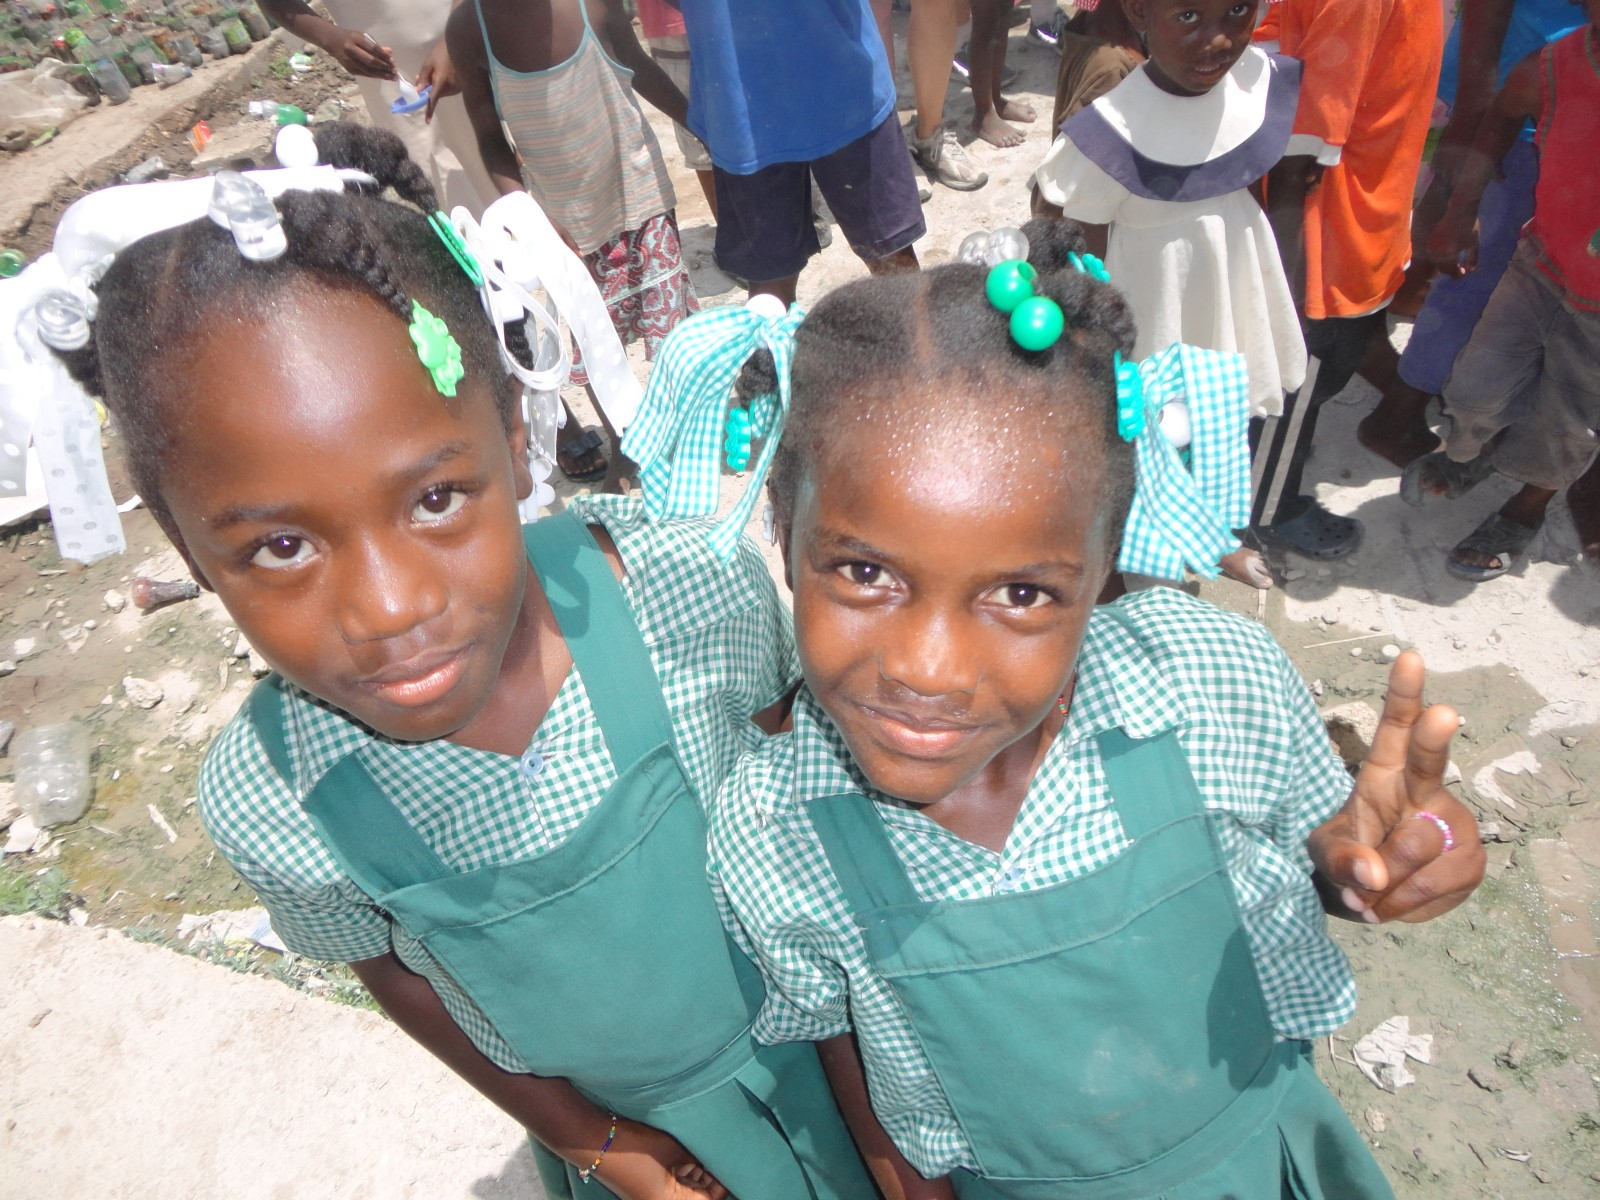 2013, TWA, Third Awareness, Haiti, Cité Soleil, school, children, Haitian, kids, education, school, volunteer